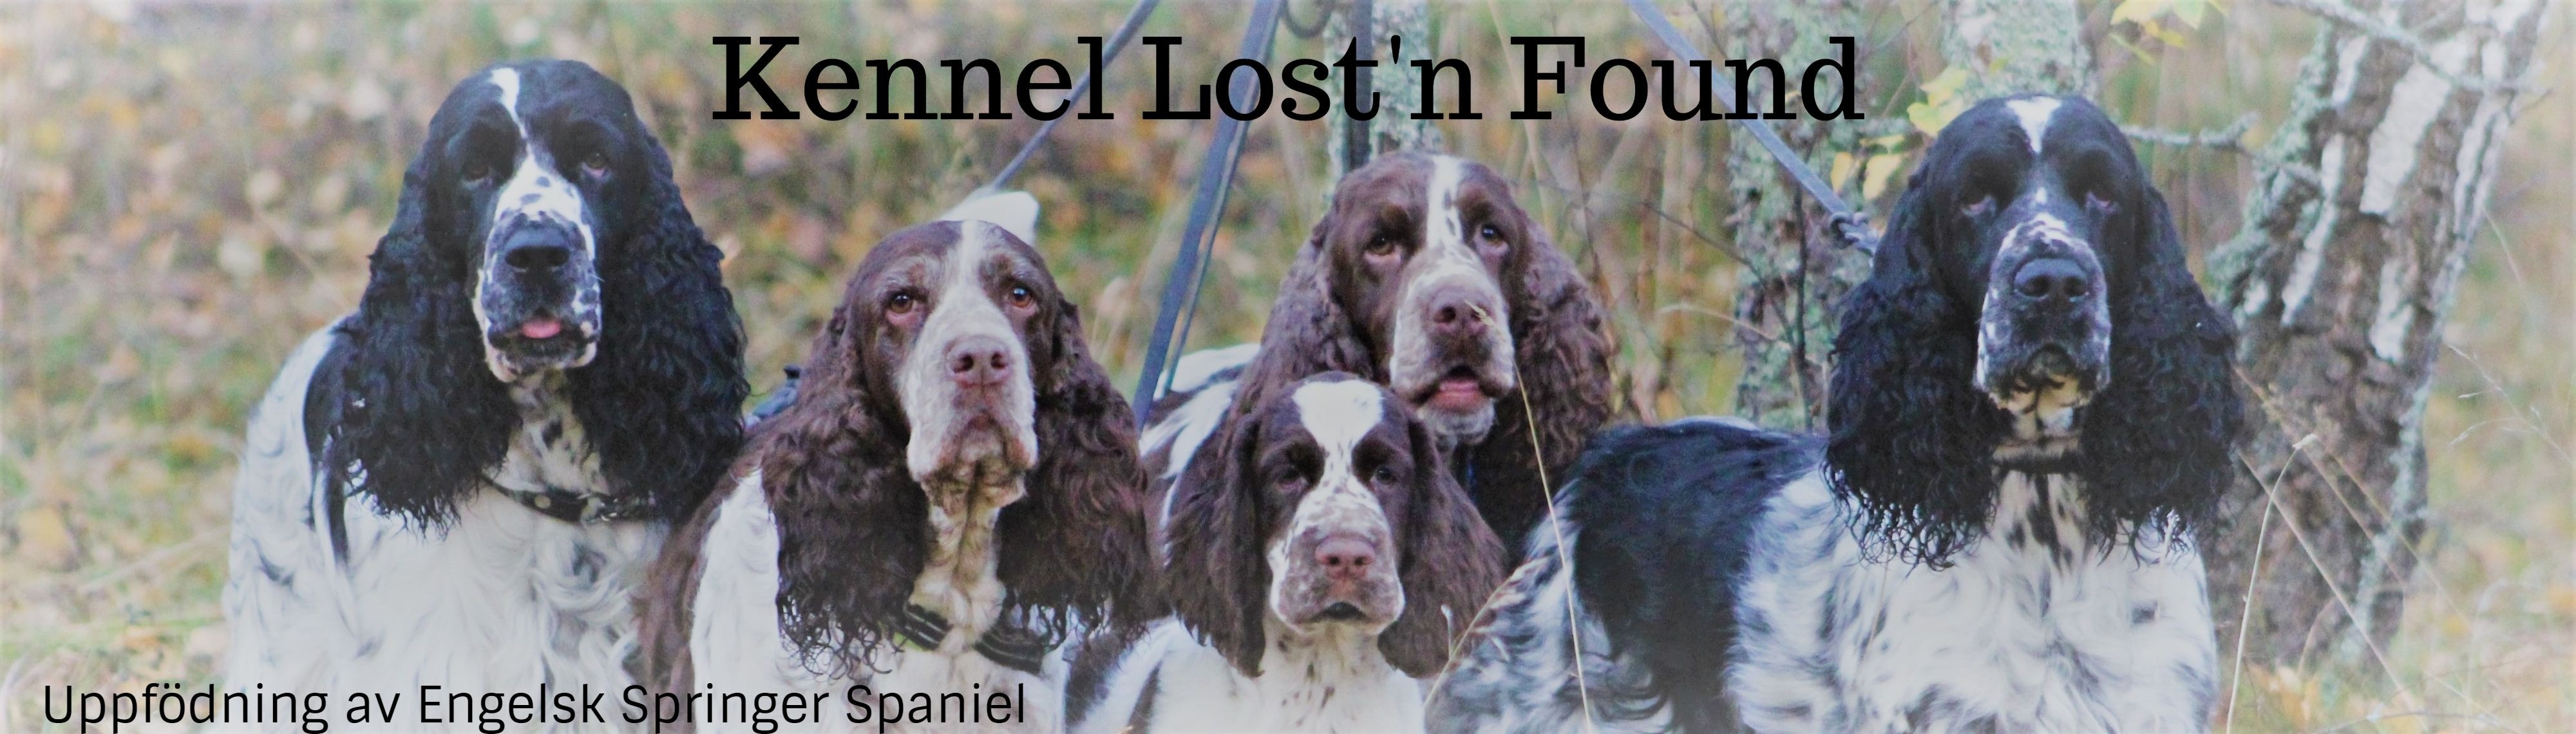 Kennel Lost'n Found